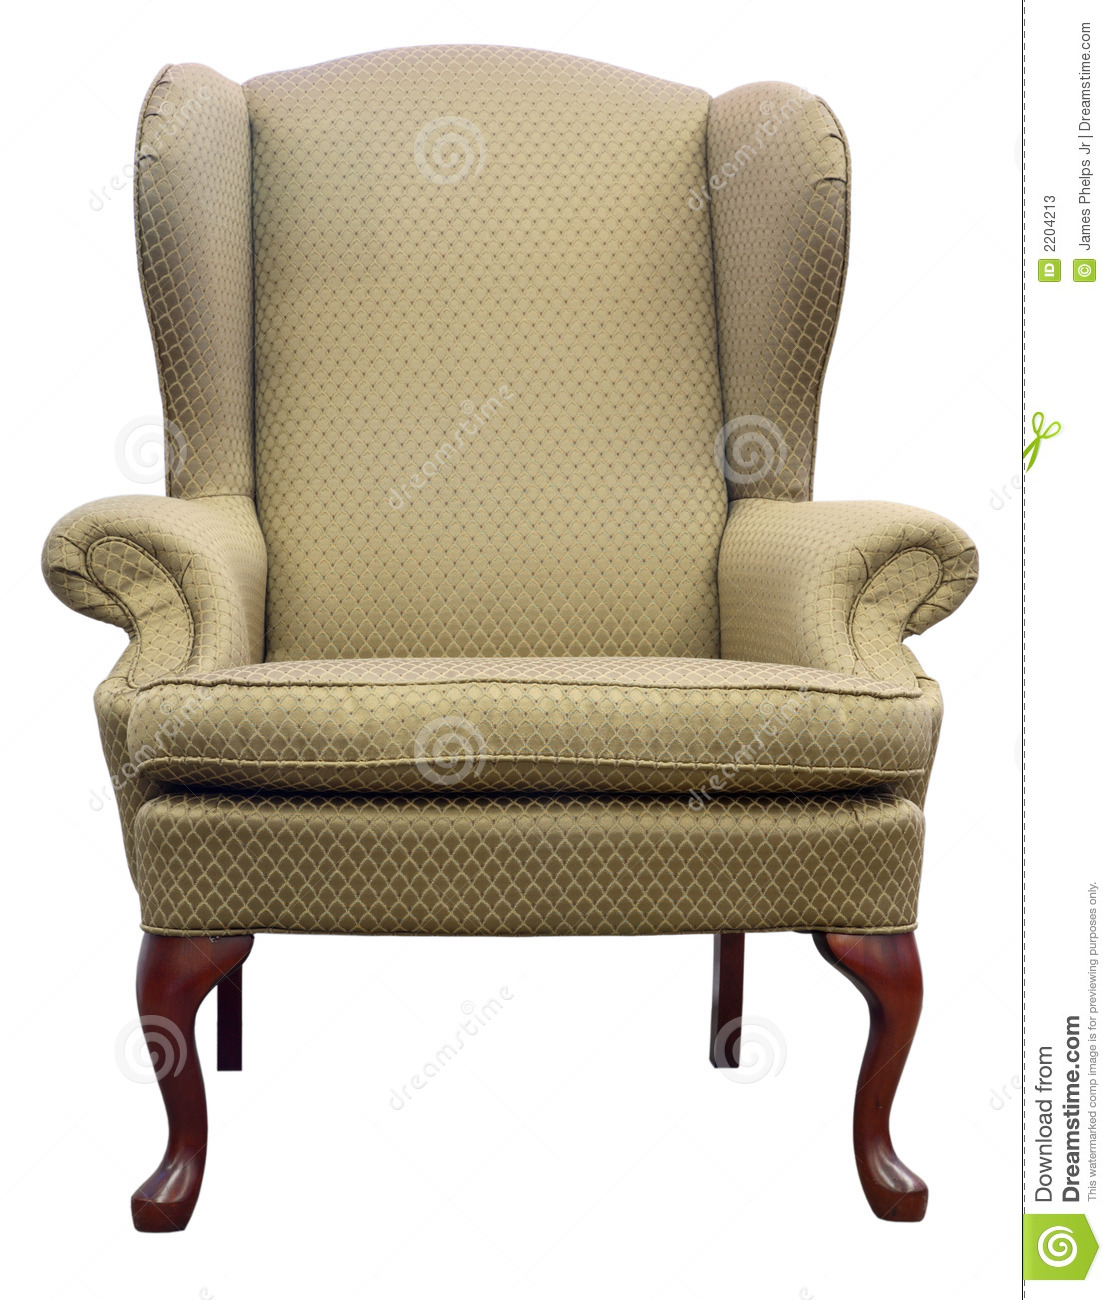 queen ann chairs lawn with canopy anne wing chair stock image of design